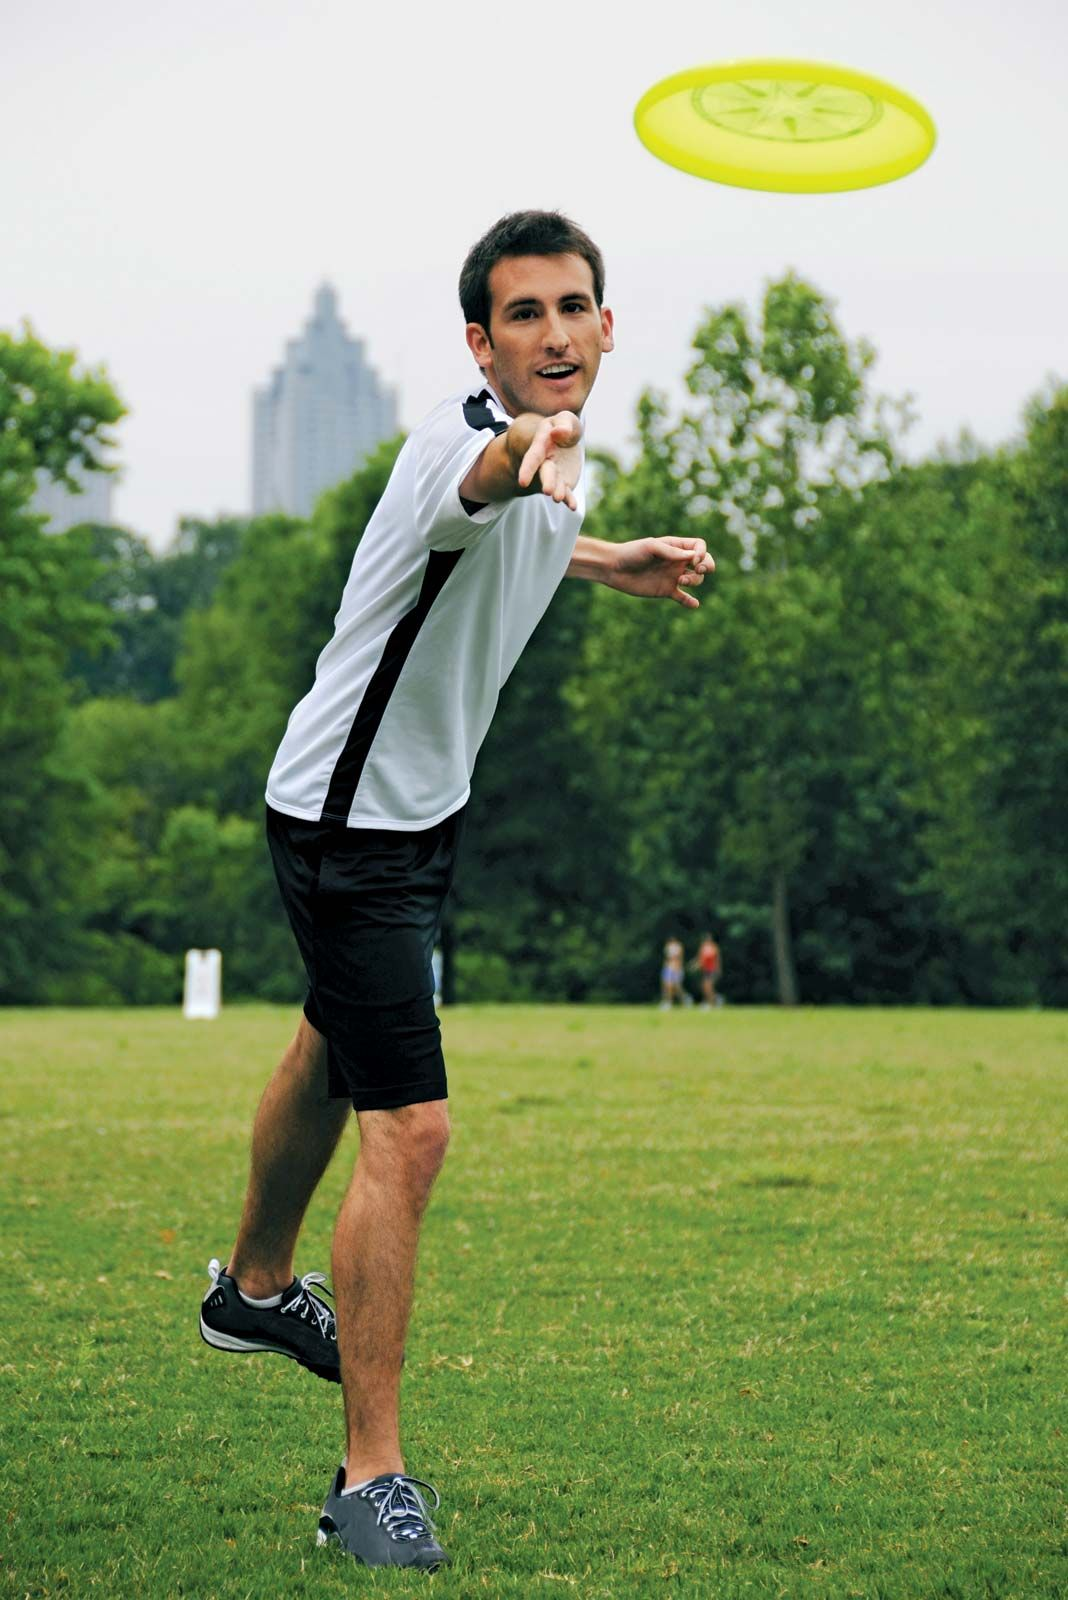 Frisbee throwing is relaxing and rejuvenating as a sport ...